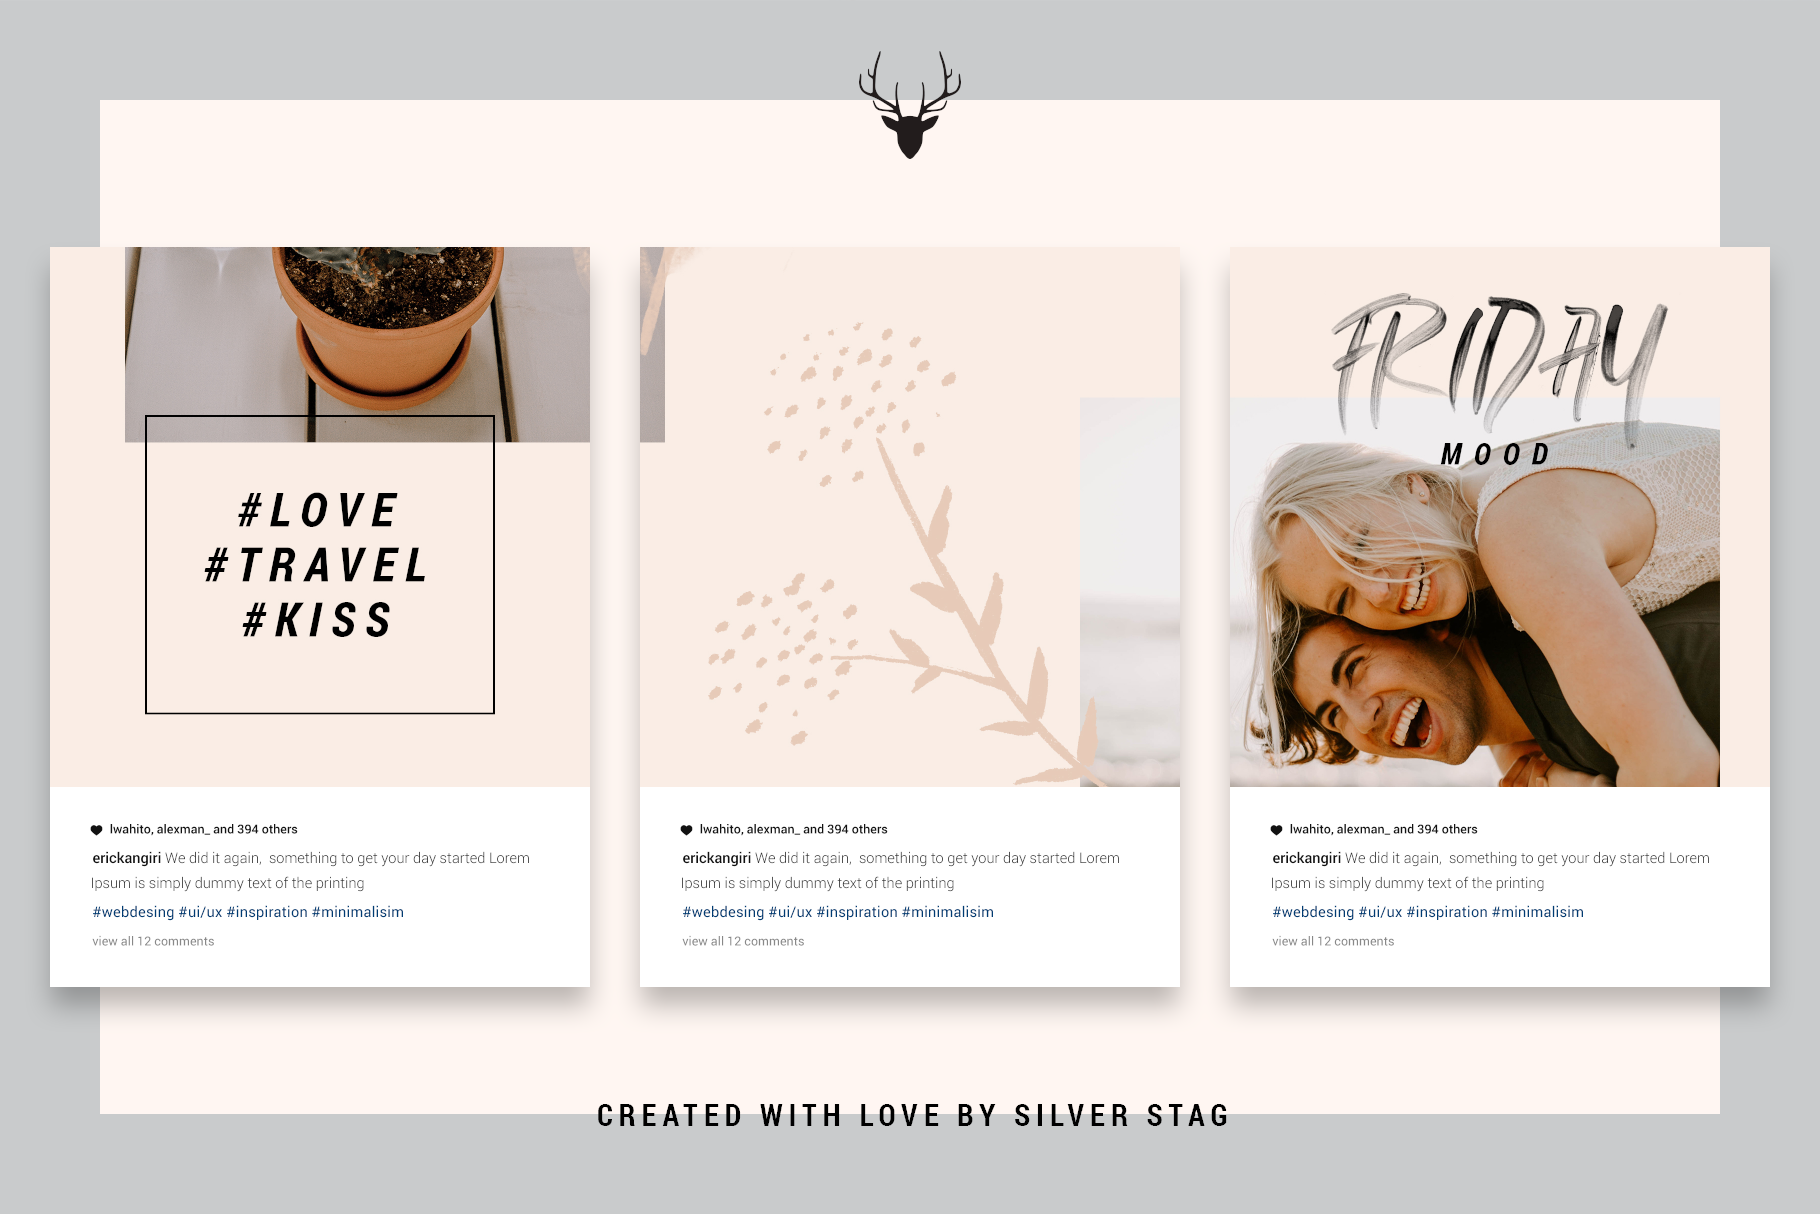 InstaGrid 5.0 - Creative & Modern Instagram Puzzle Template example image 9